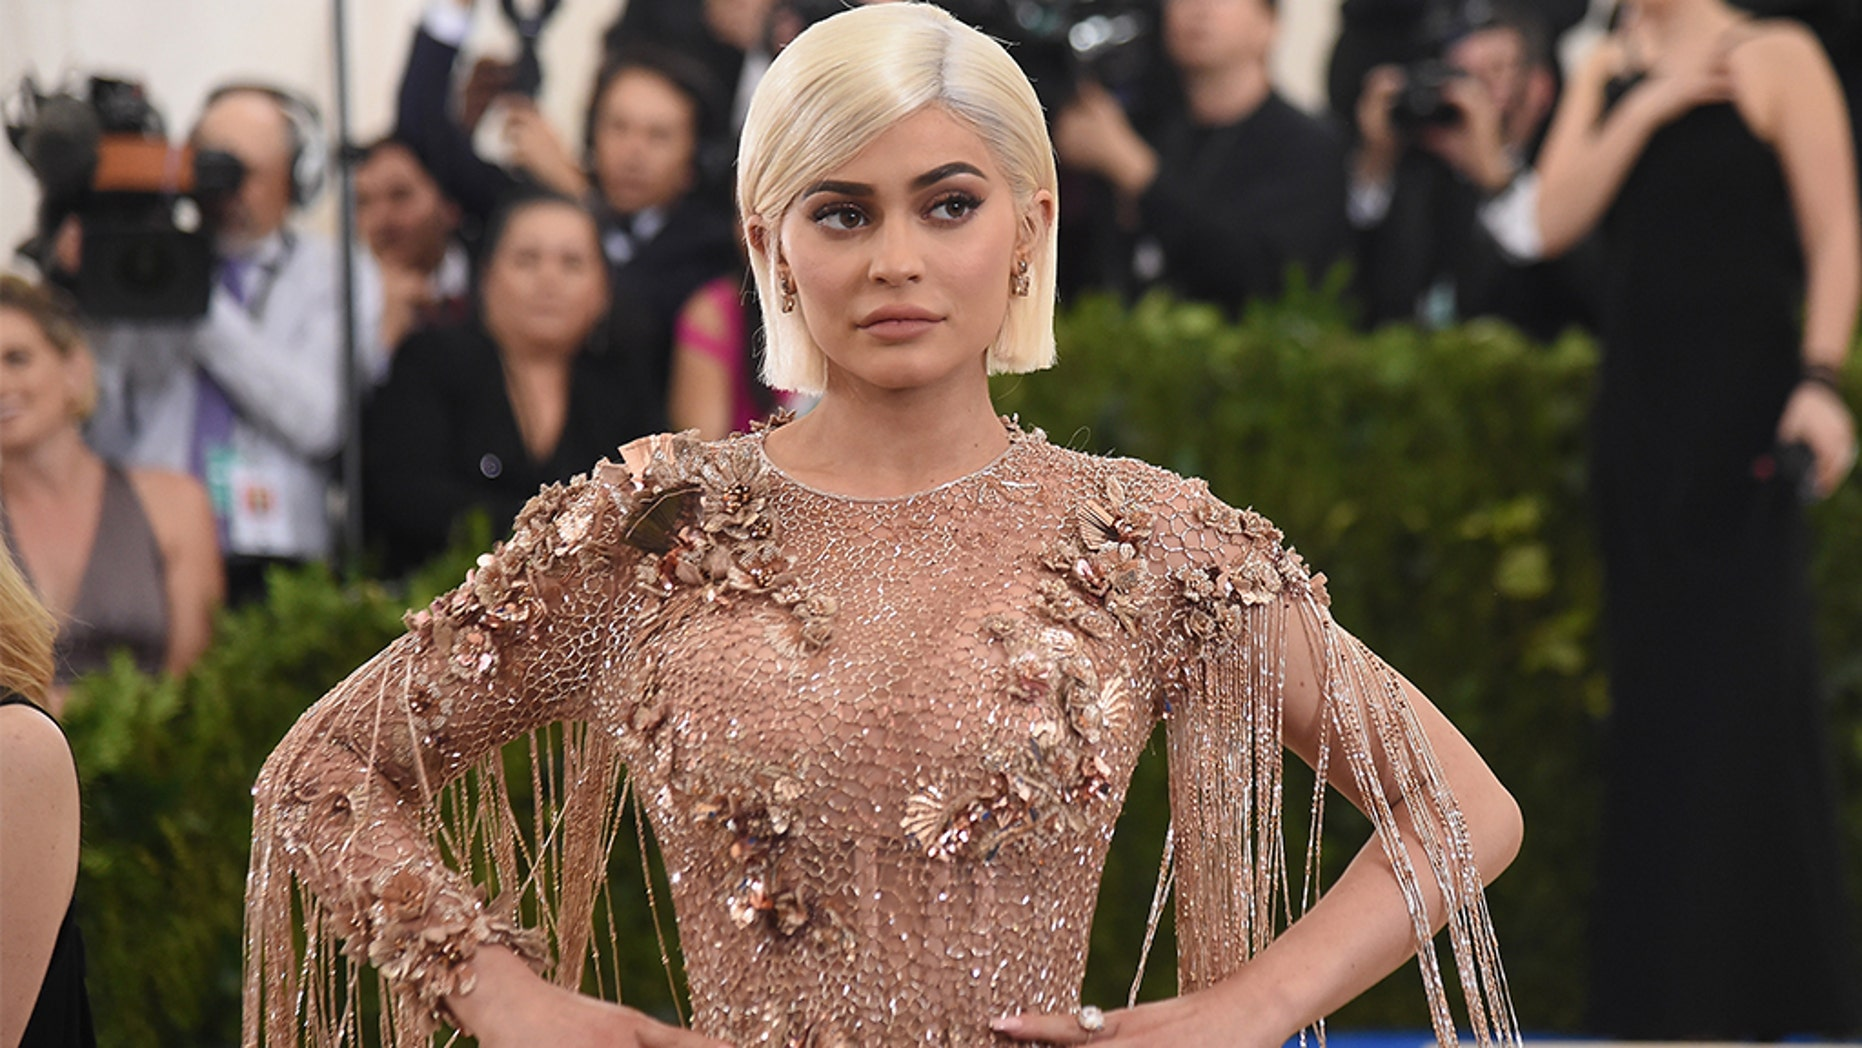 Kylie Jenner reportedly offered some insight to her pregnancy on Tuesday, explaining how her body is different and what she's done to reclaim her figure.